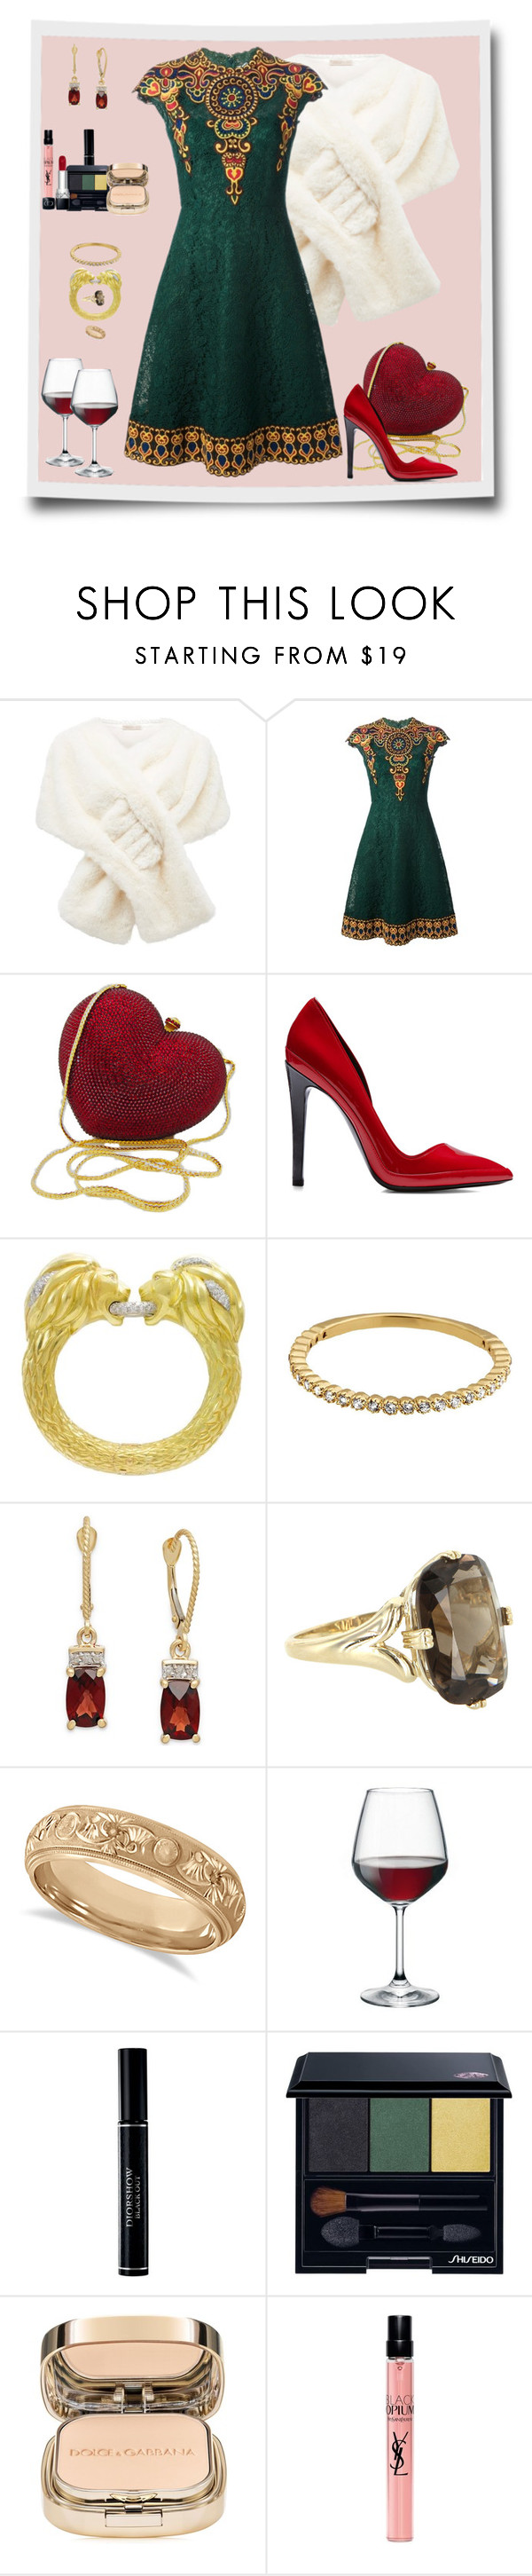 """Dinner & Drinks, My Darling"" by winscotthk ❤ liked on Polyvore featuring Forever New, Valentino, Anthony Vaccarello, Tiffany & Co., Vintage, Allurez, Bormioli Rocco, Christian Dior, Shiseido and Dolce&Gabbana"